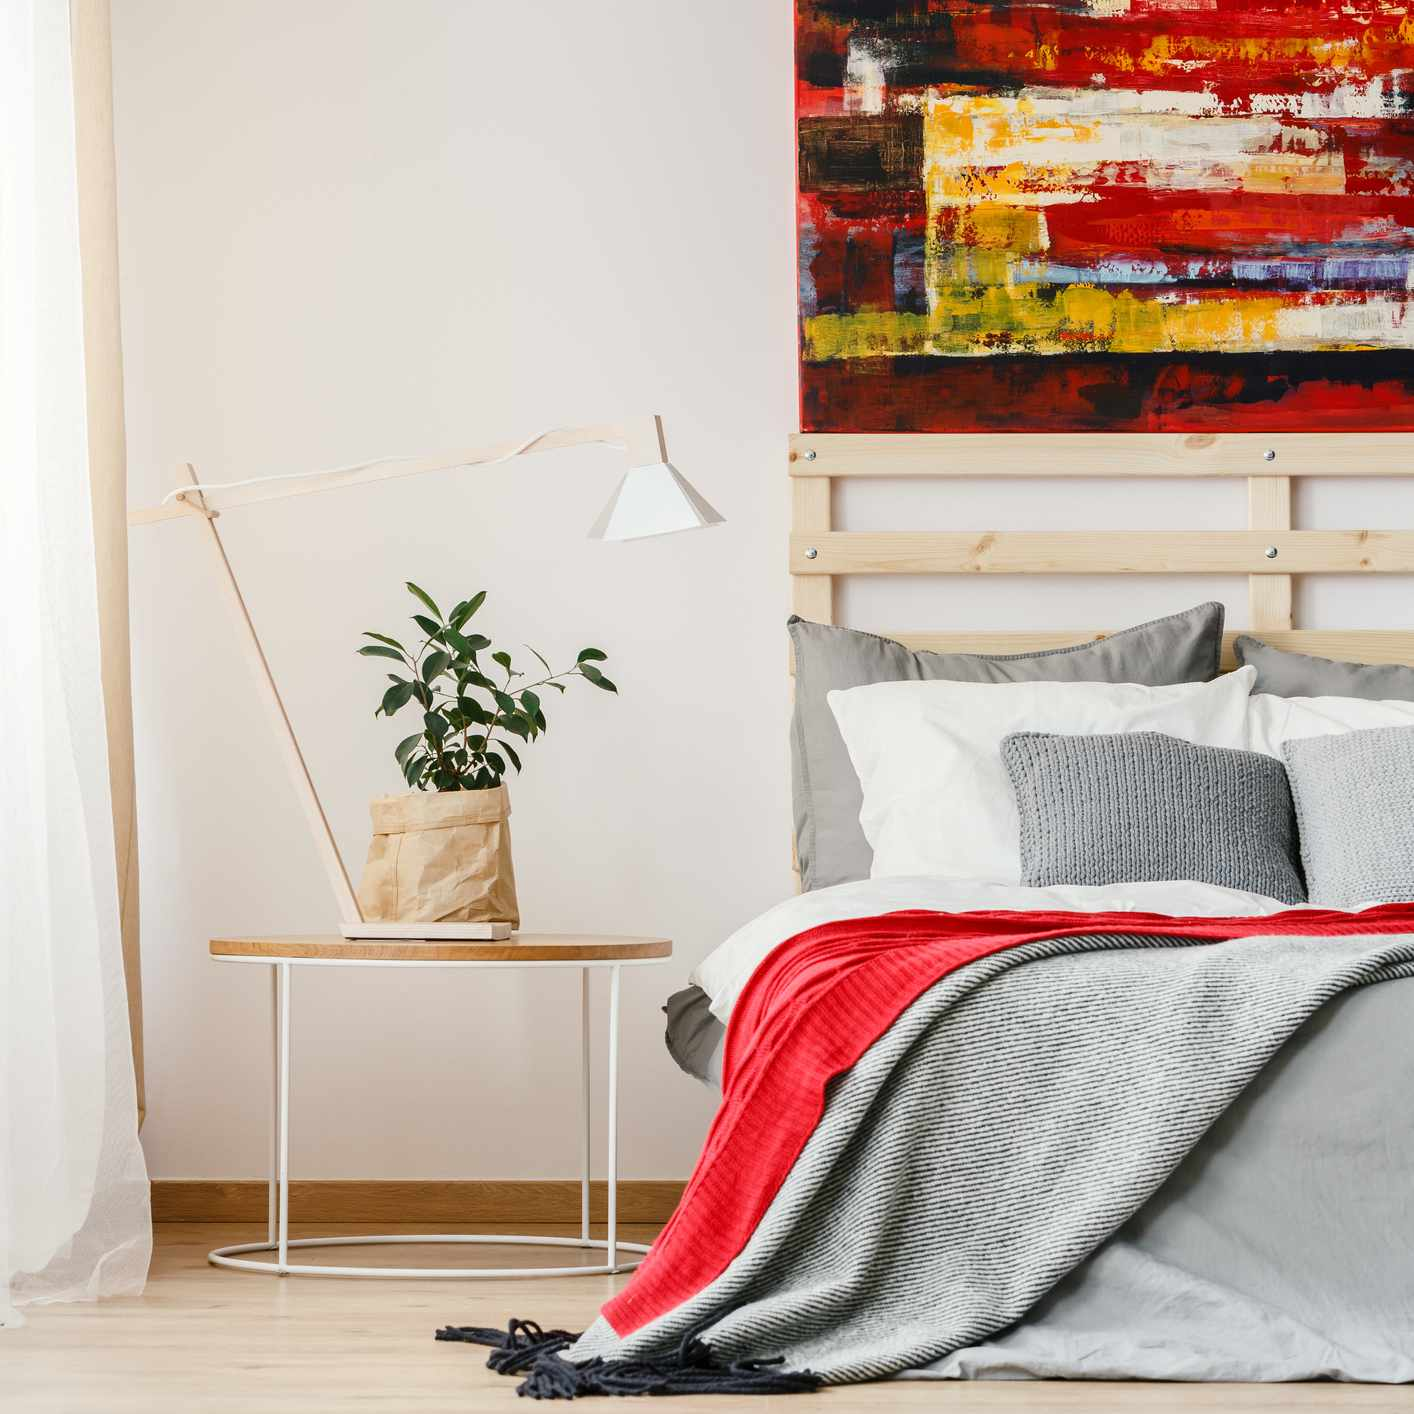 Grey and red blanket on bed next to table with lamp and plant in bedroom interior with painting.